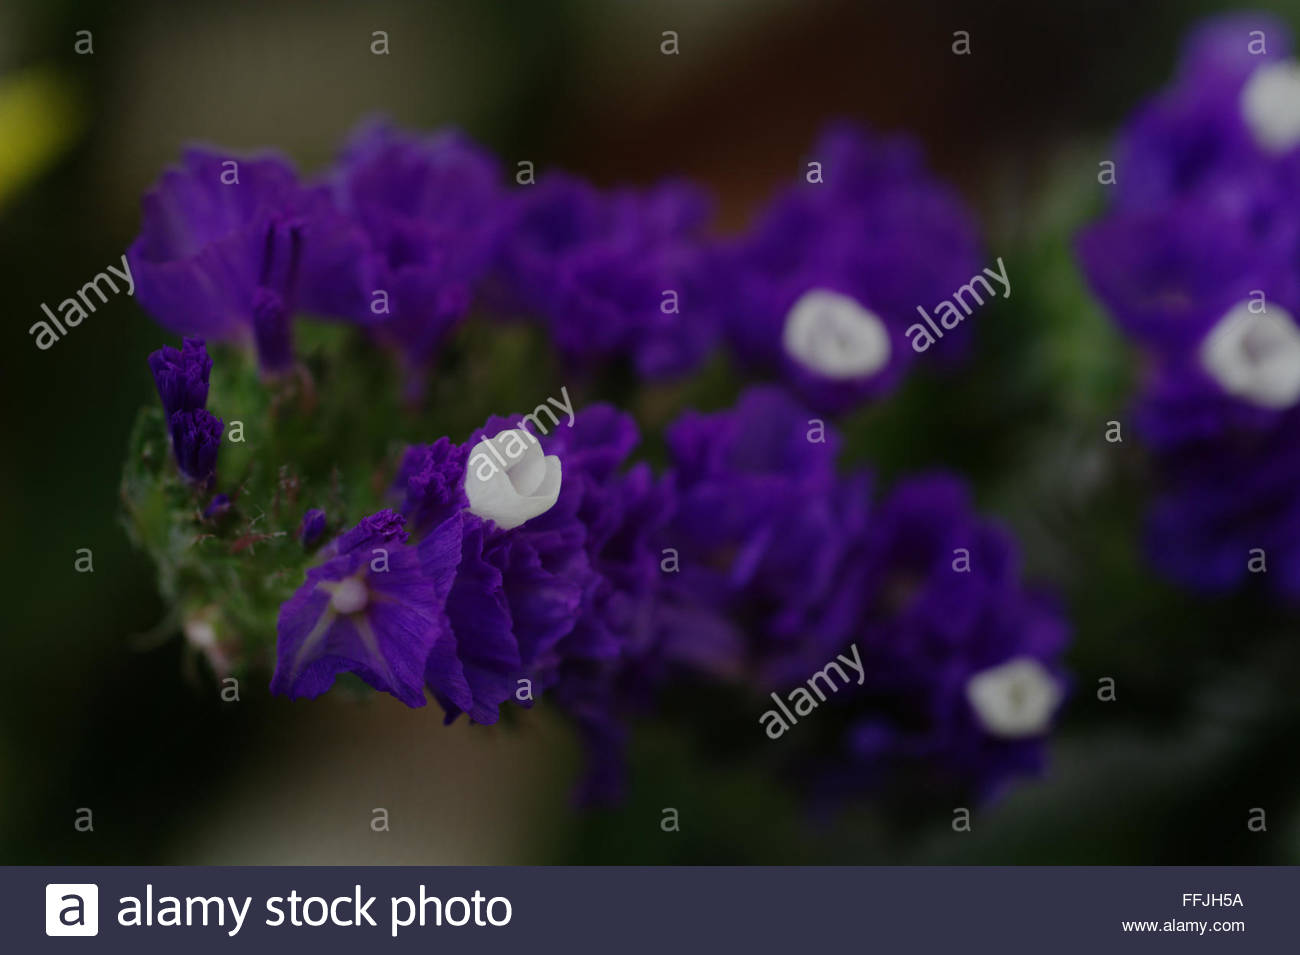 Statice flower stock photos statice flower stock images alamy photograph of a purple statice flower stock image mightylinksfo